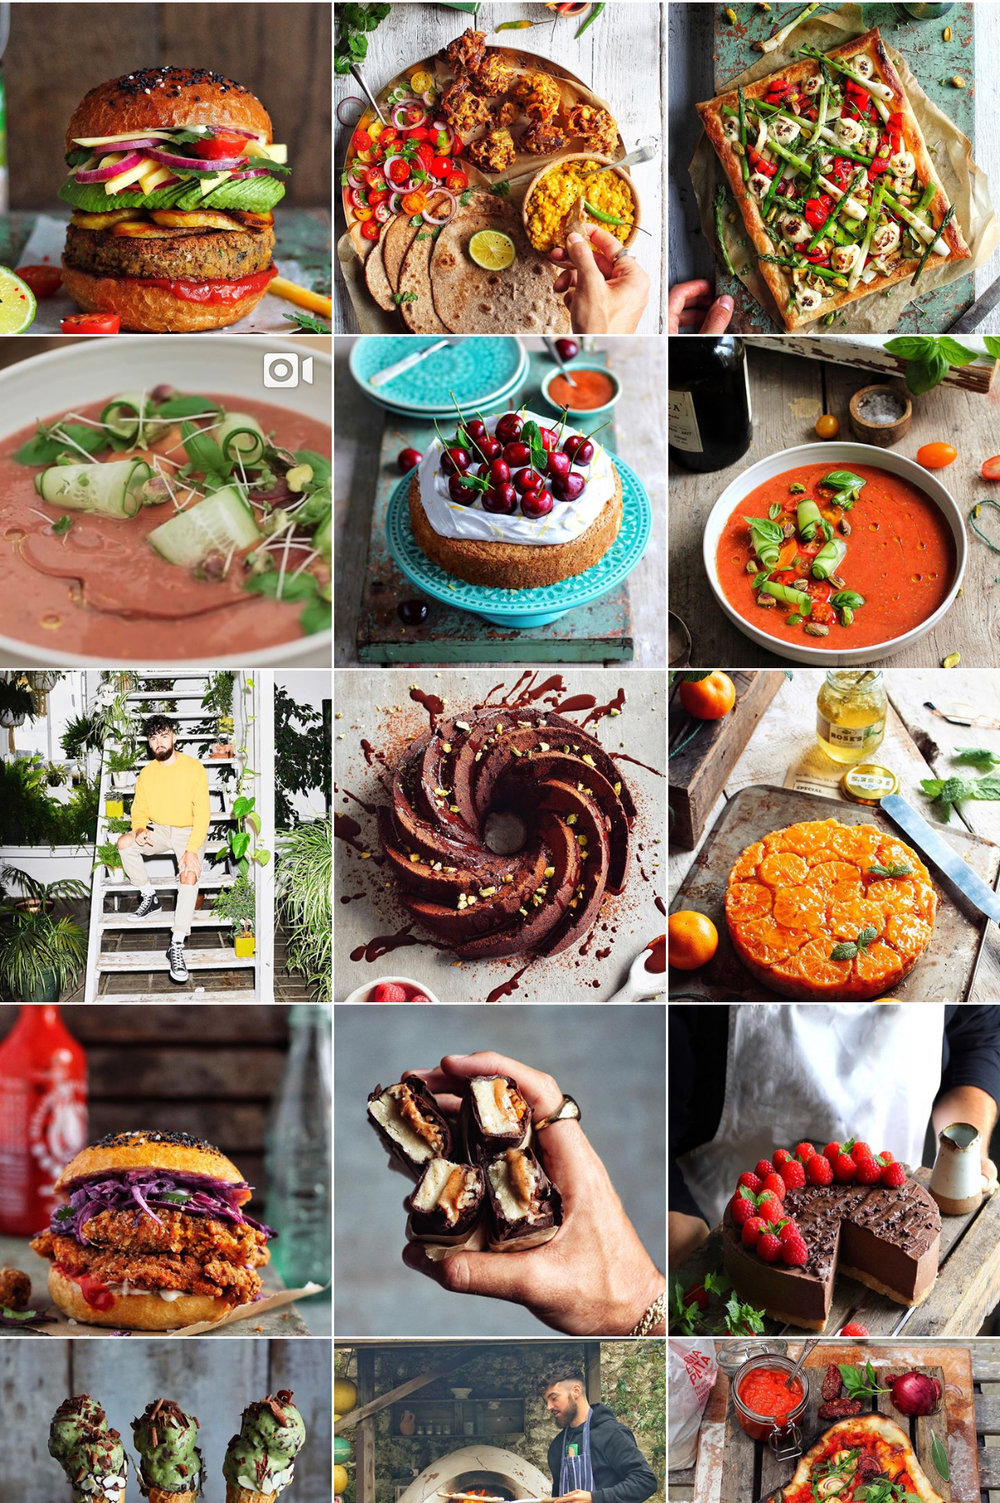 Some of the mouth watering meals @AvantGardeVegan has created.